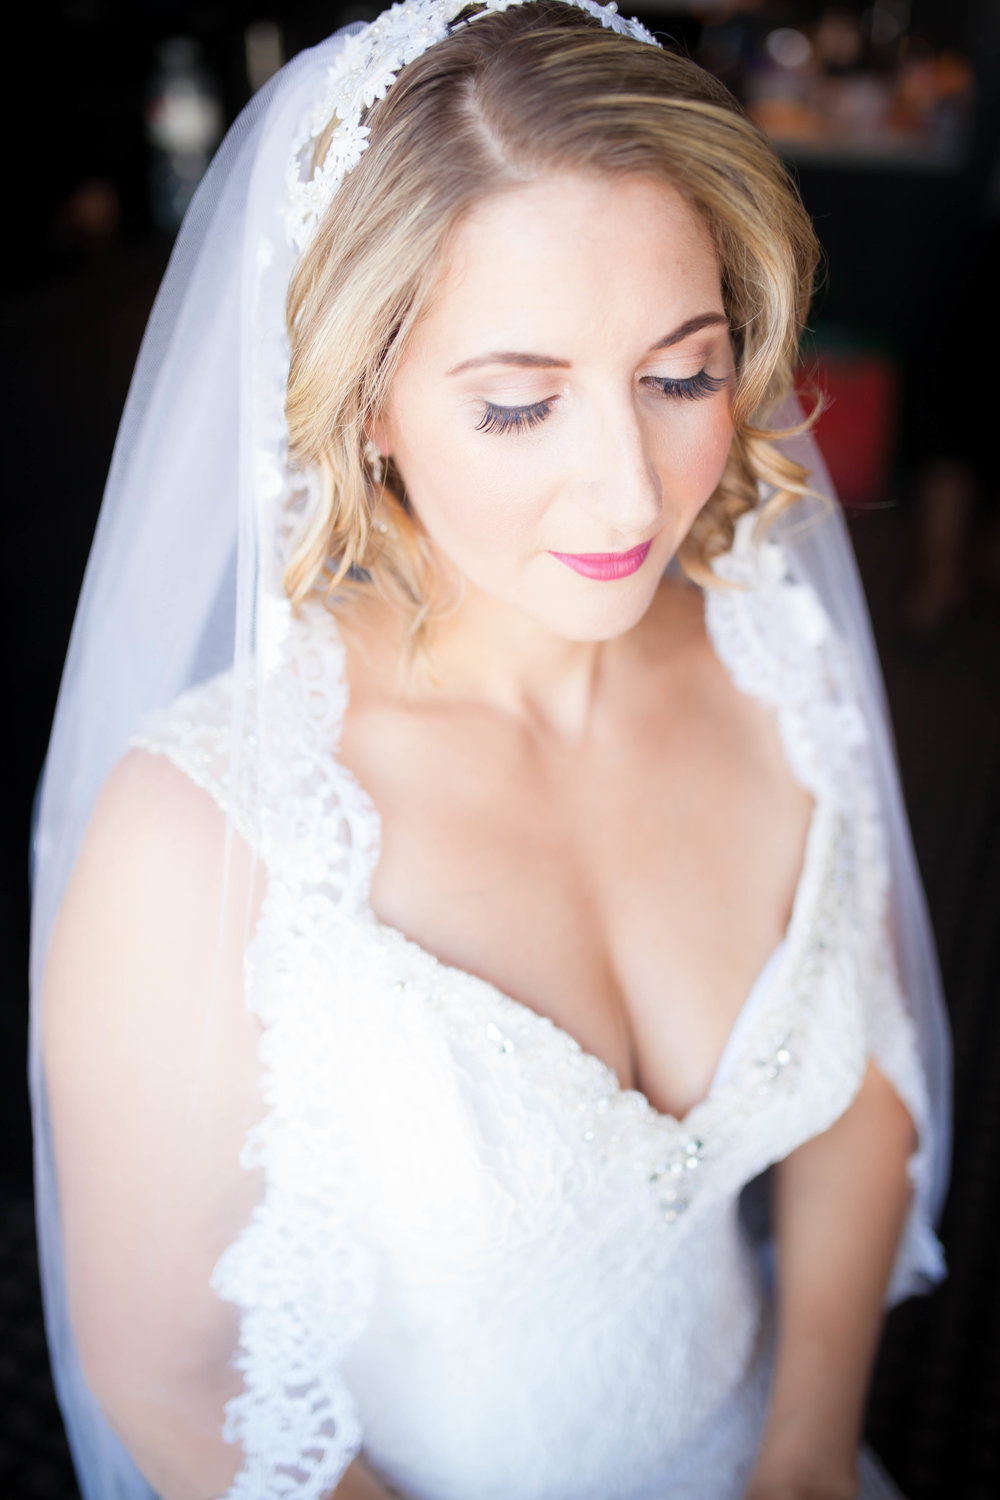 Beauty by Sacha Bride - Pam